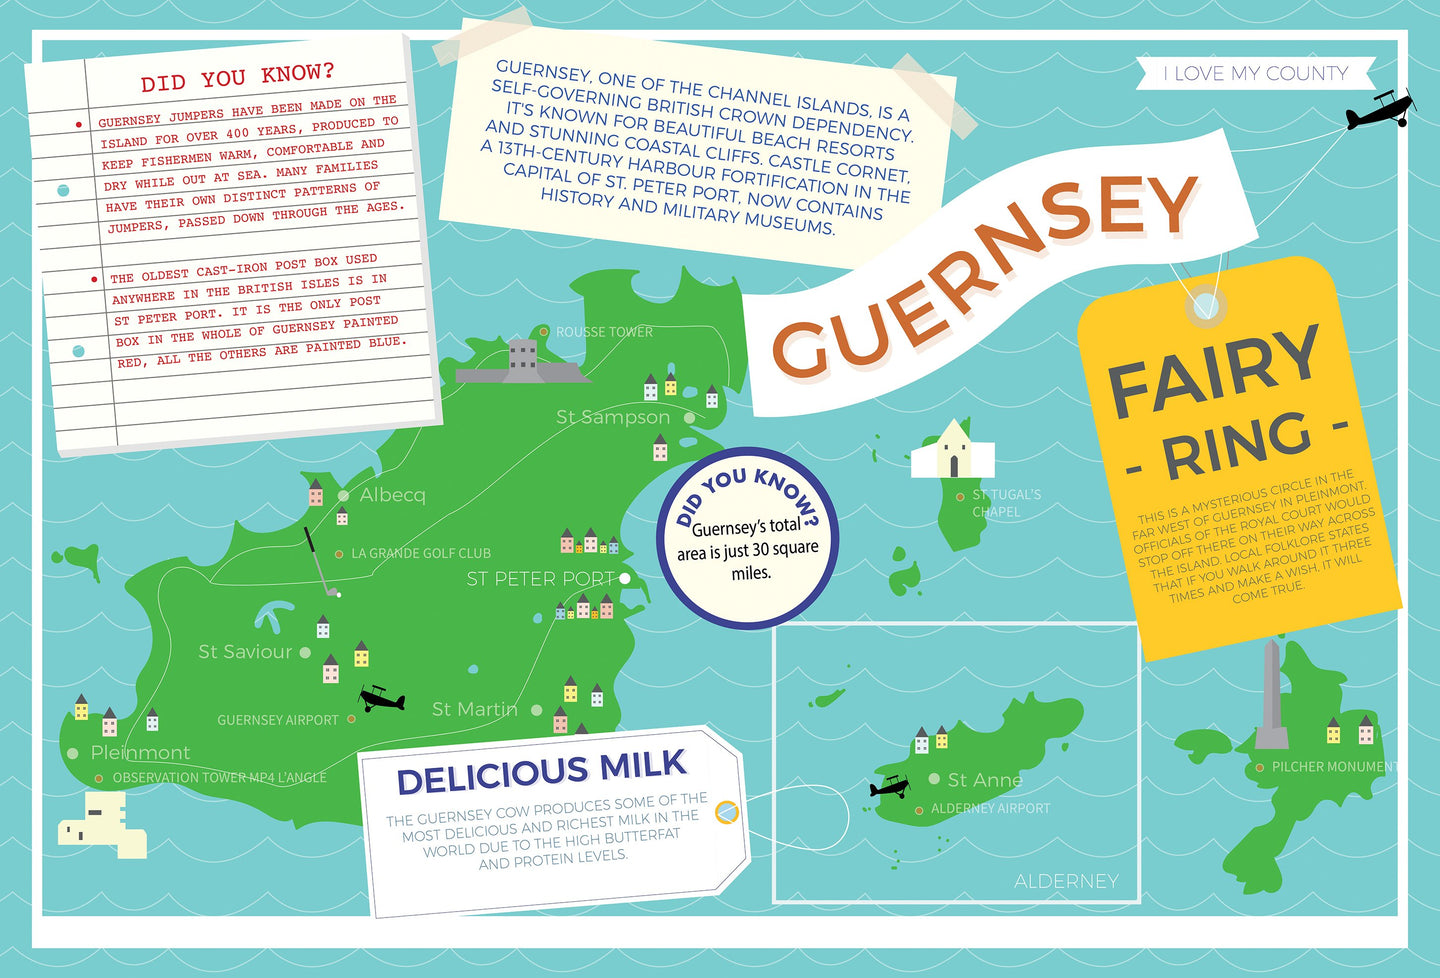 Guernsey - I Love My County 400 Piece Jigsaw Puzzle